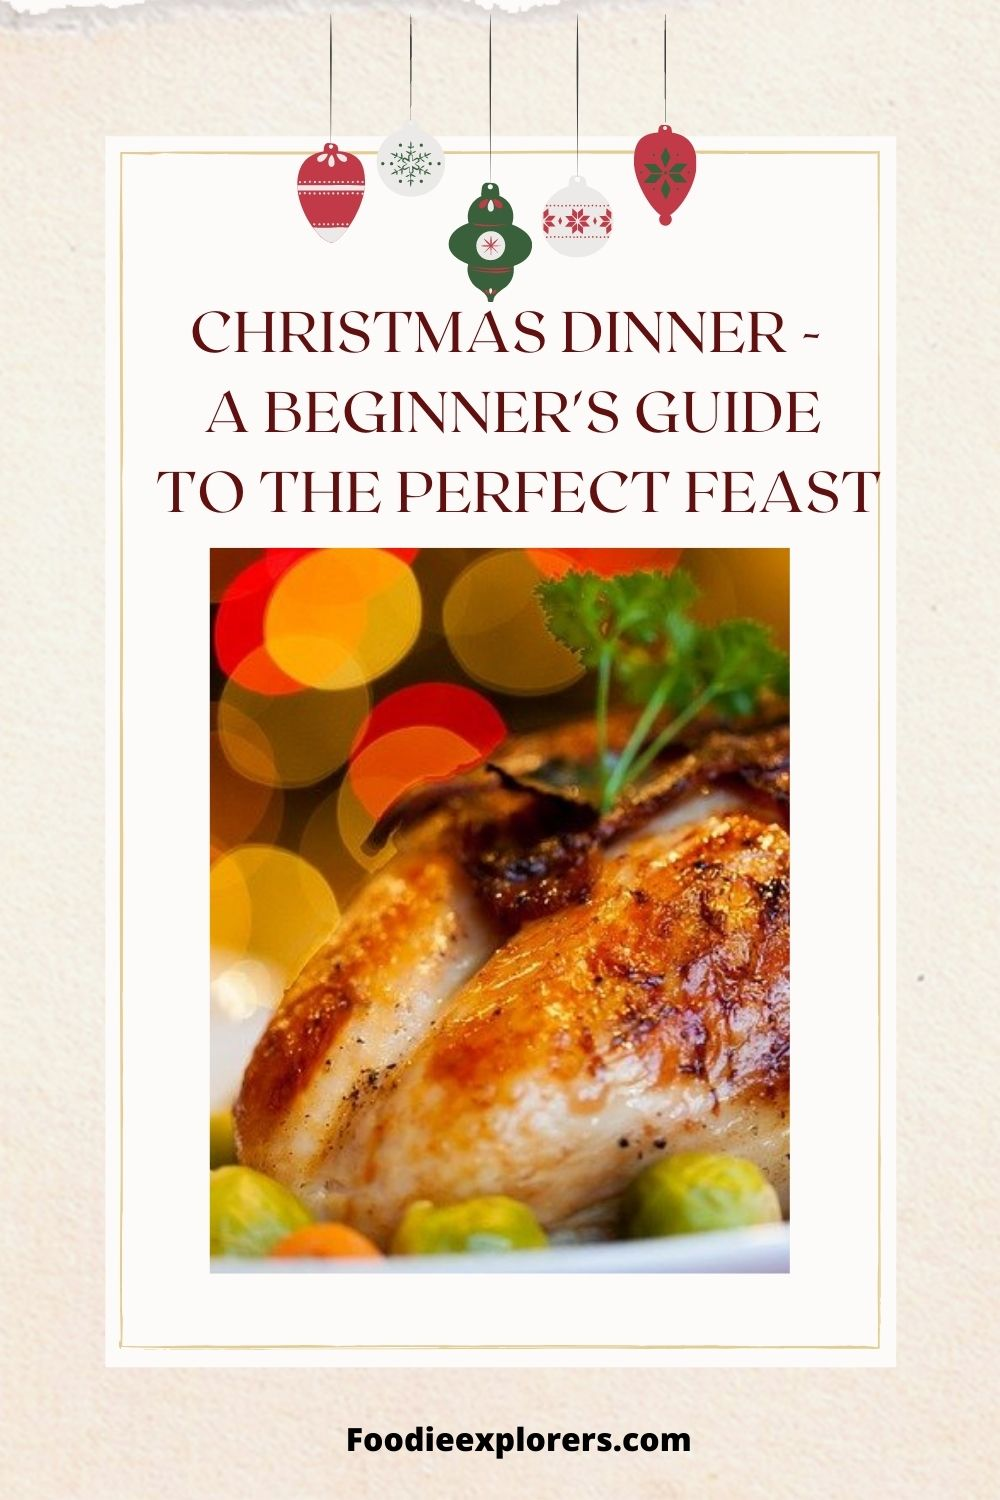 Christmas dinner - A beginner's guide to the perfect feast